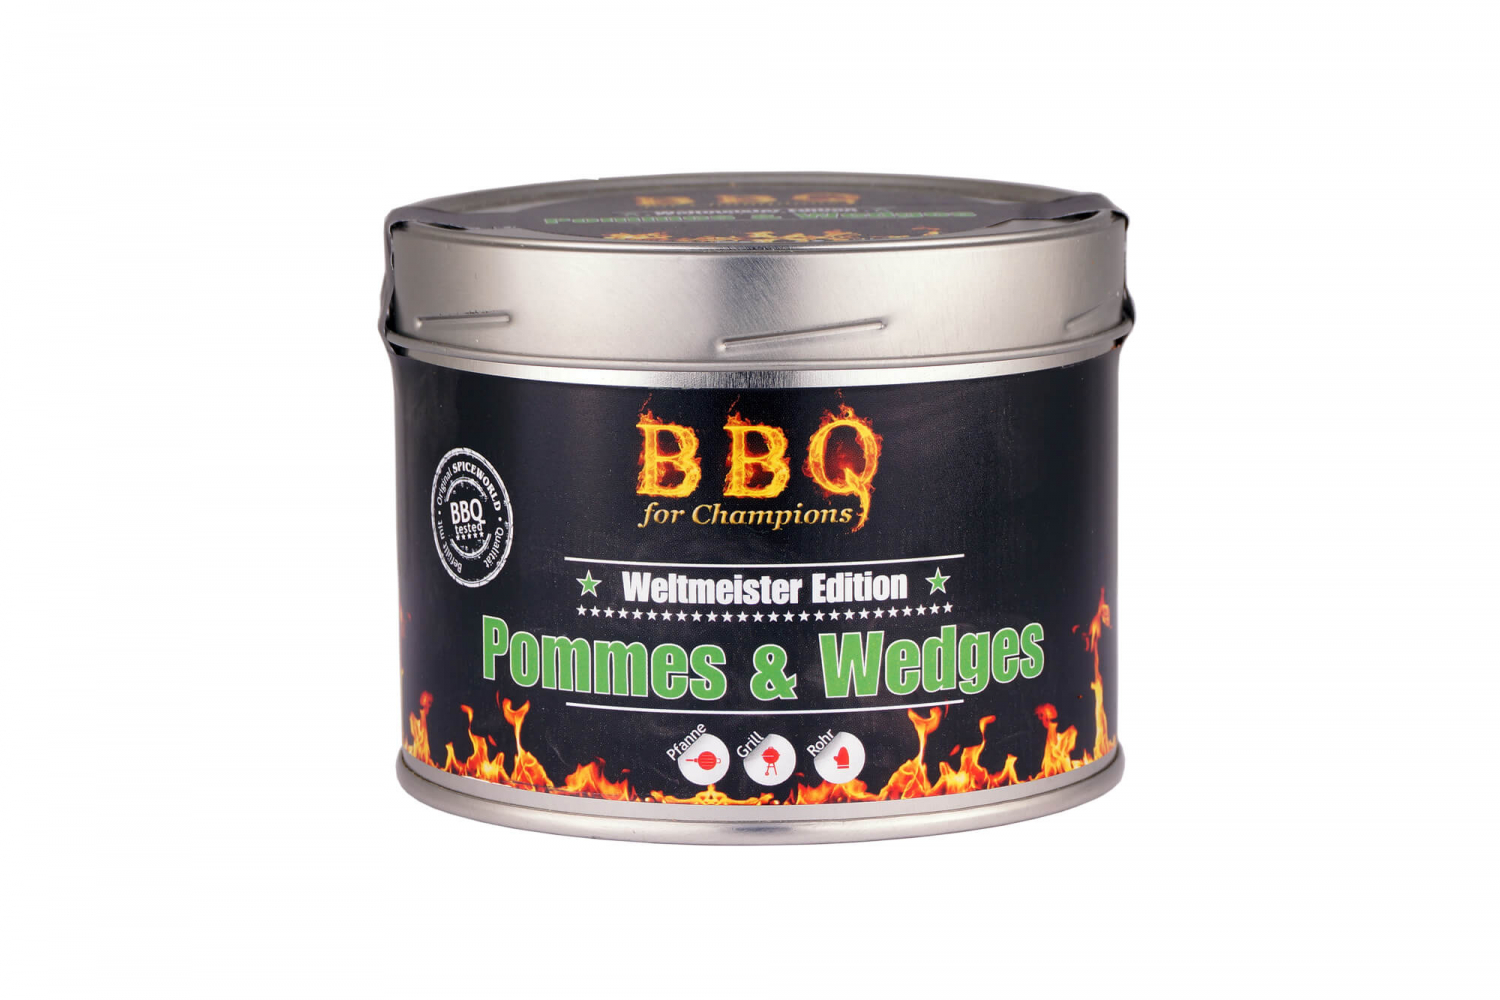 Barbecue-for-Champions Wedges - Pommes, 550ml Gastro-Dose 550ml Gastro-Dose